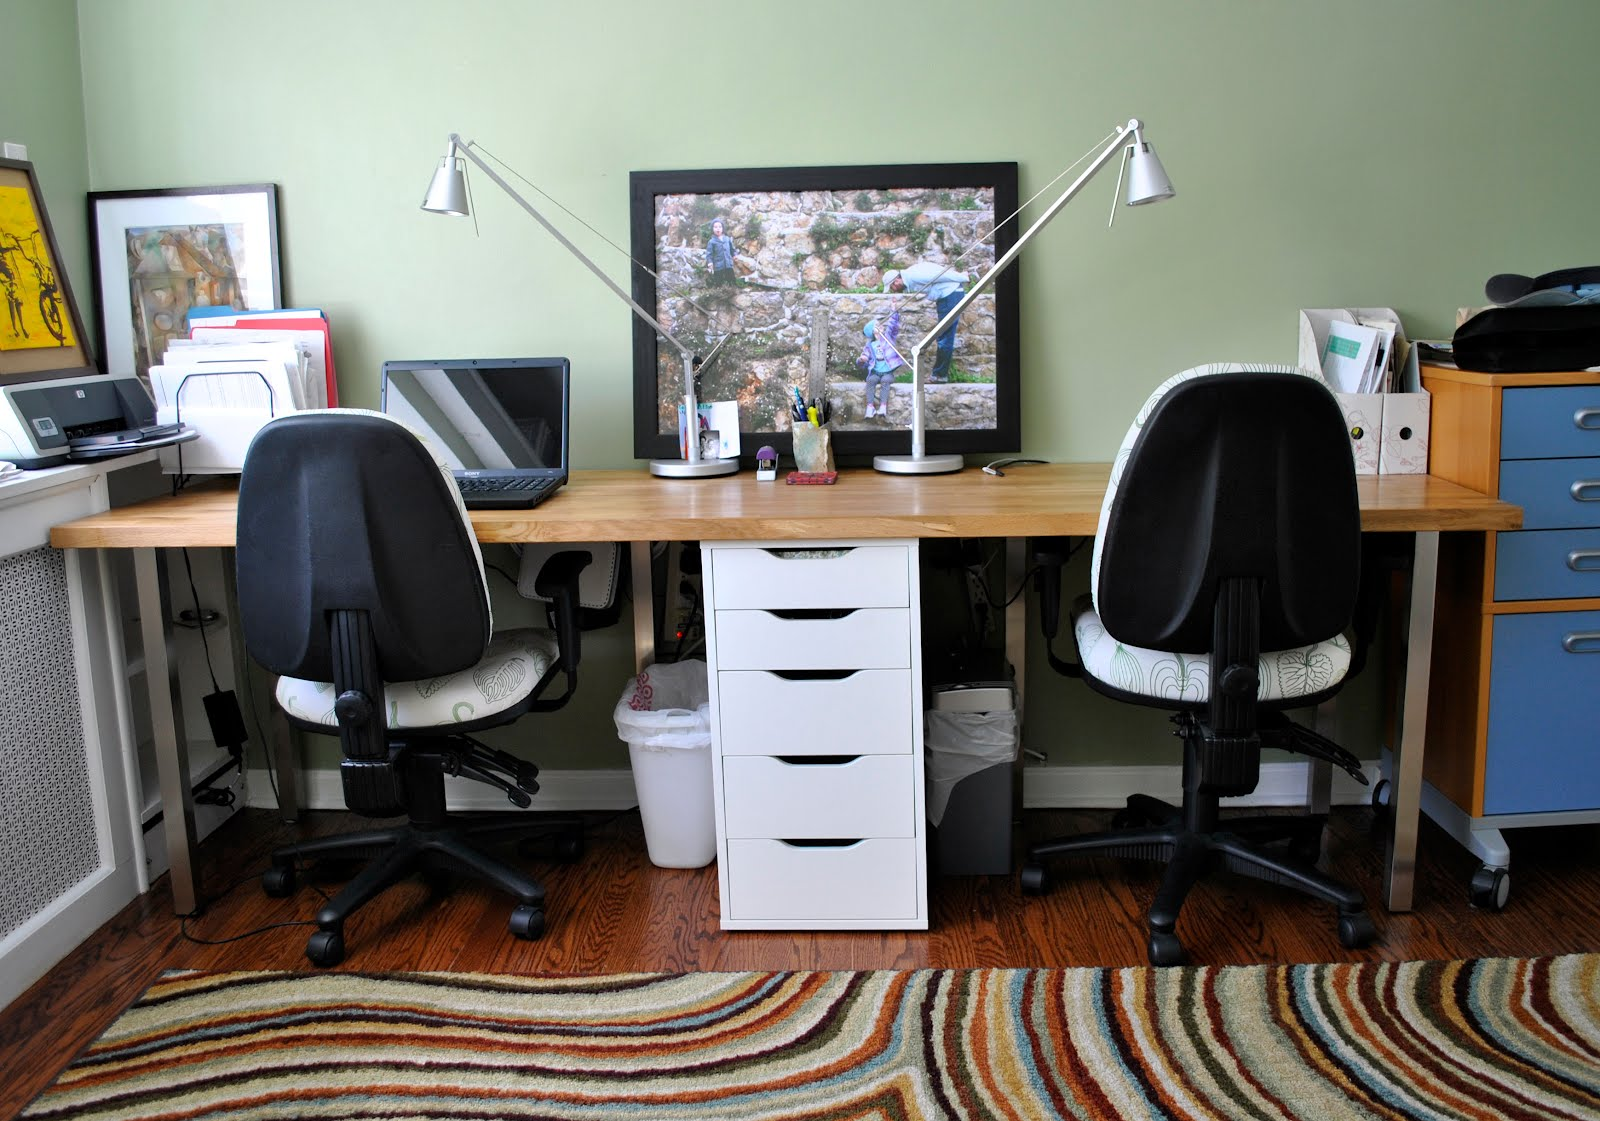 Forty two roads hacking ikea Desk for two persons